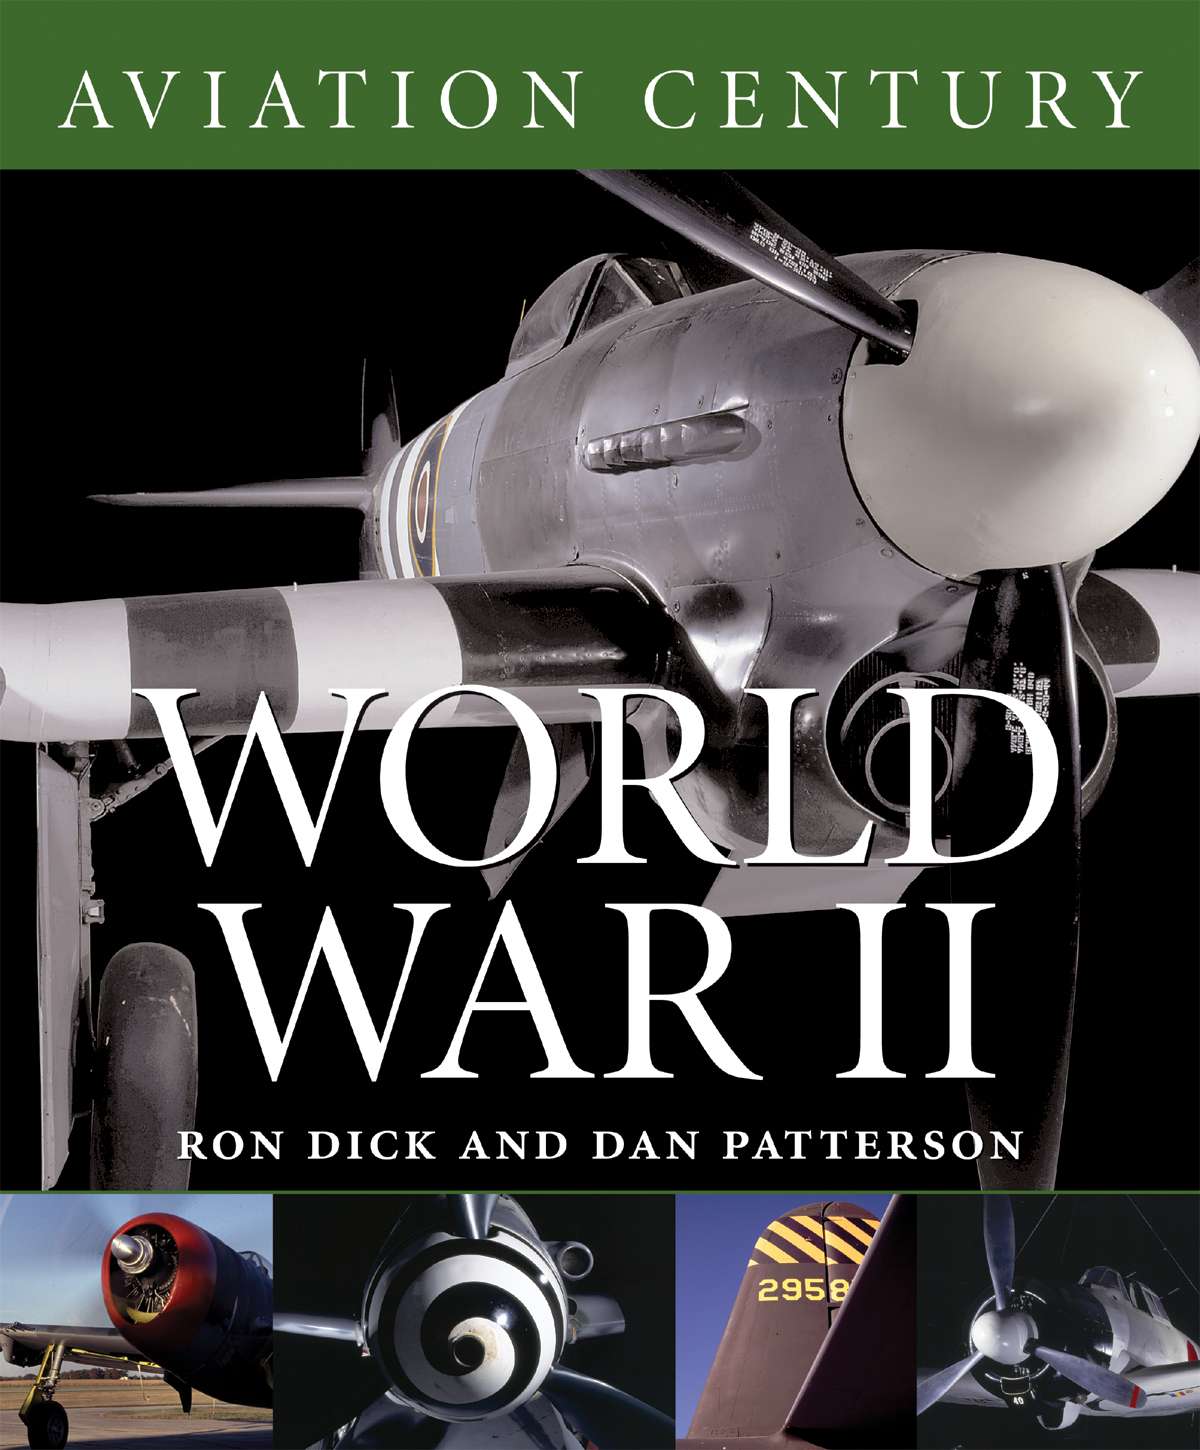 Aviation Century World War II